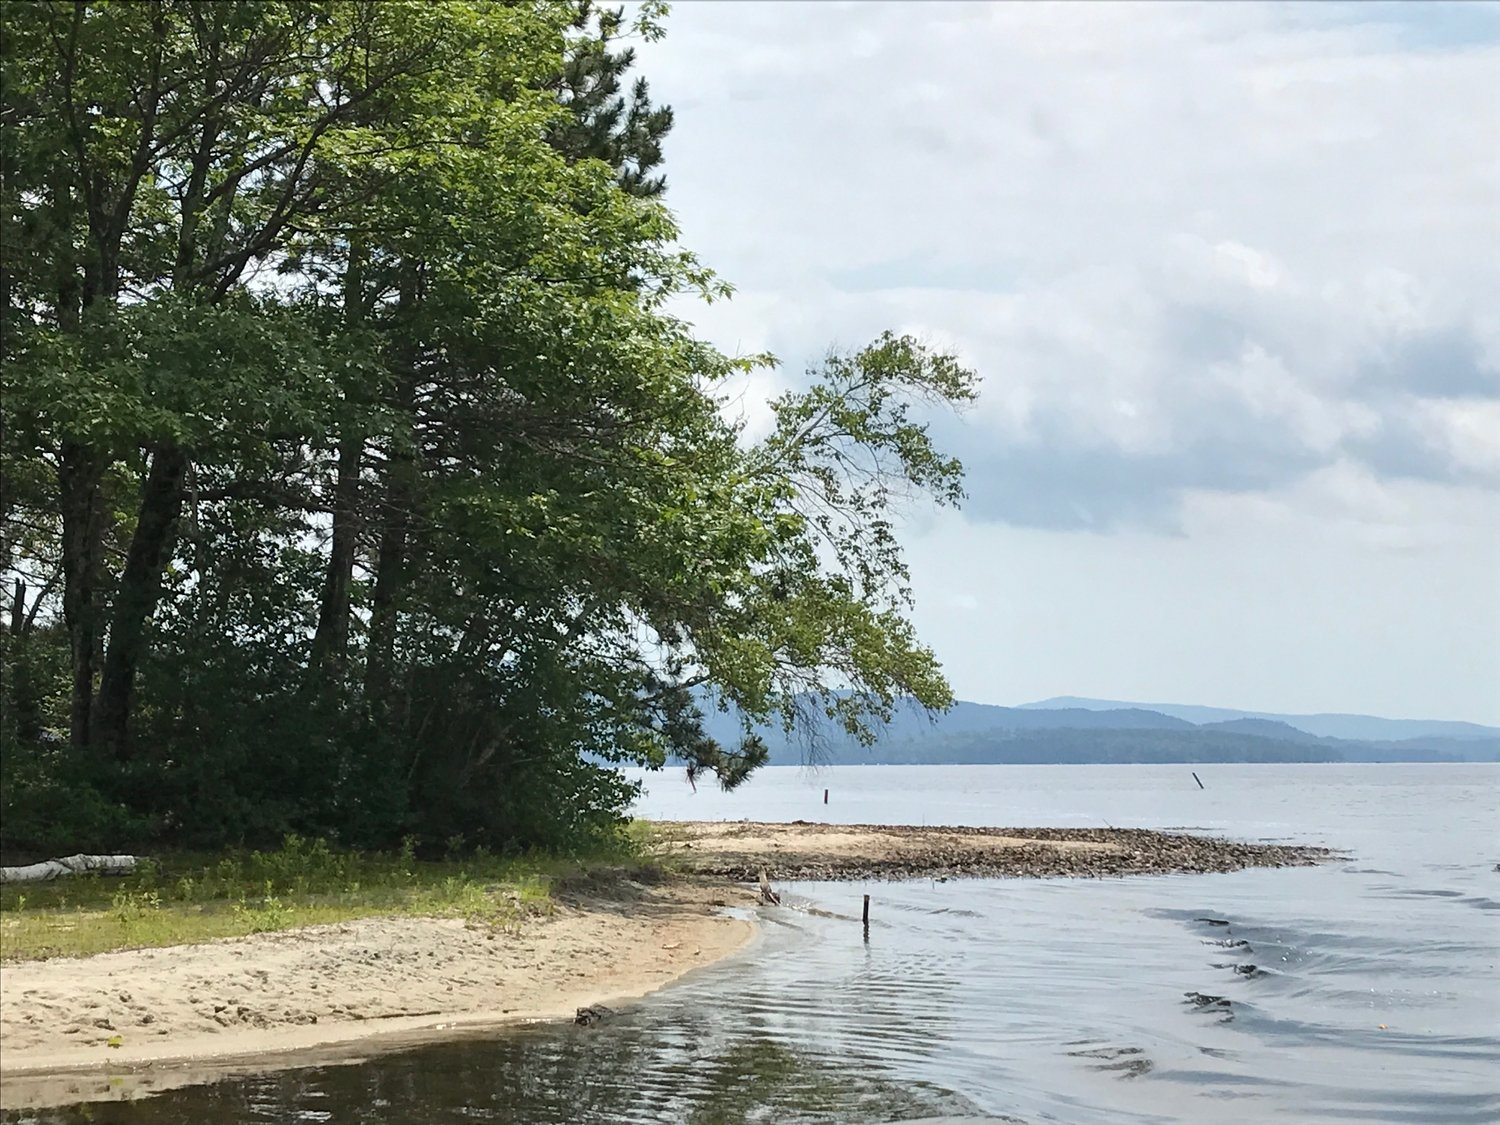 A beachy area on Newfound Lake